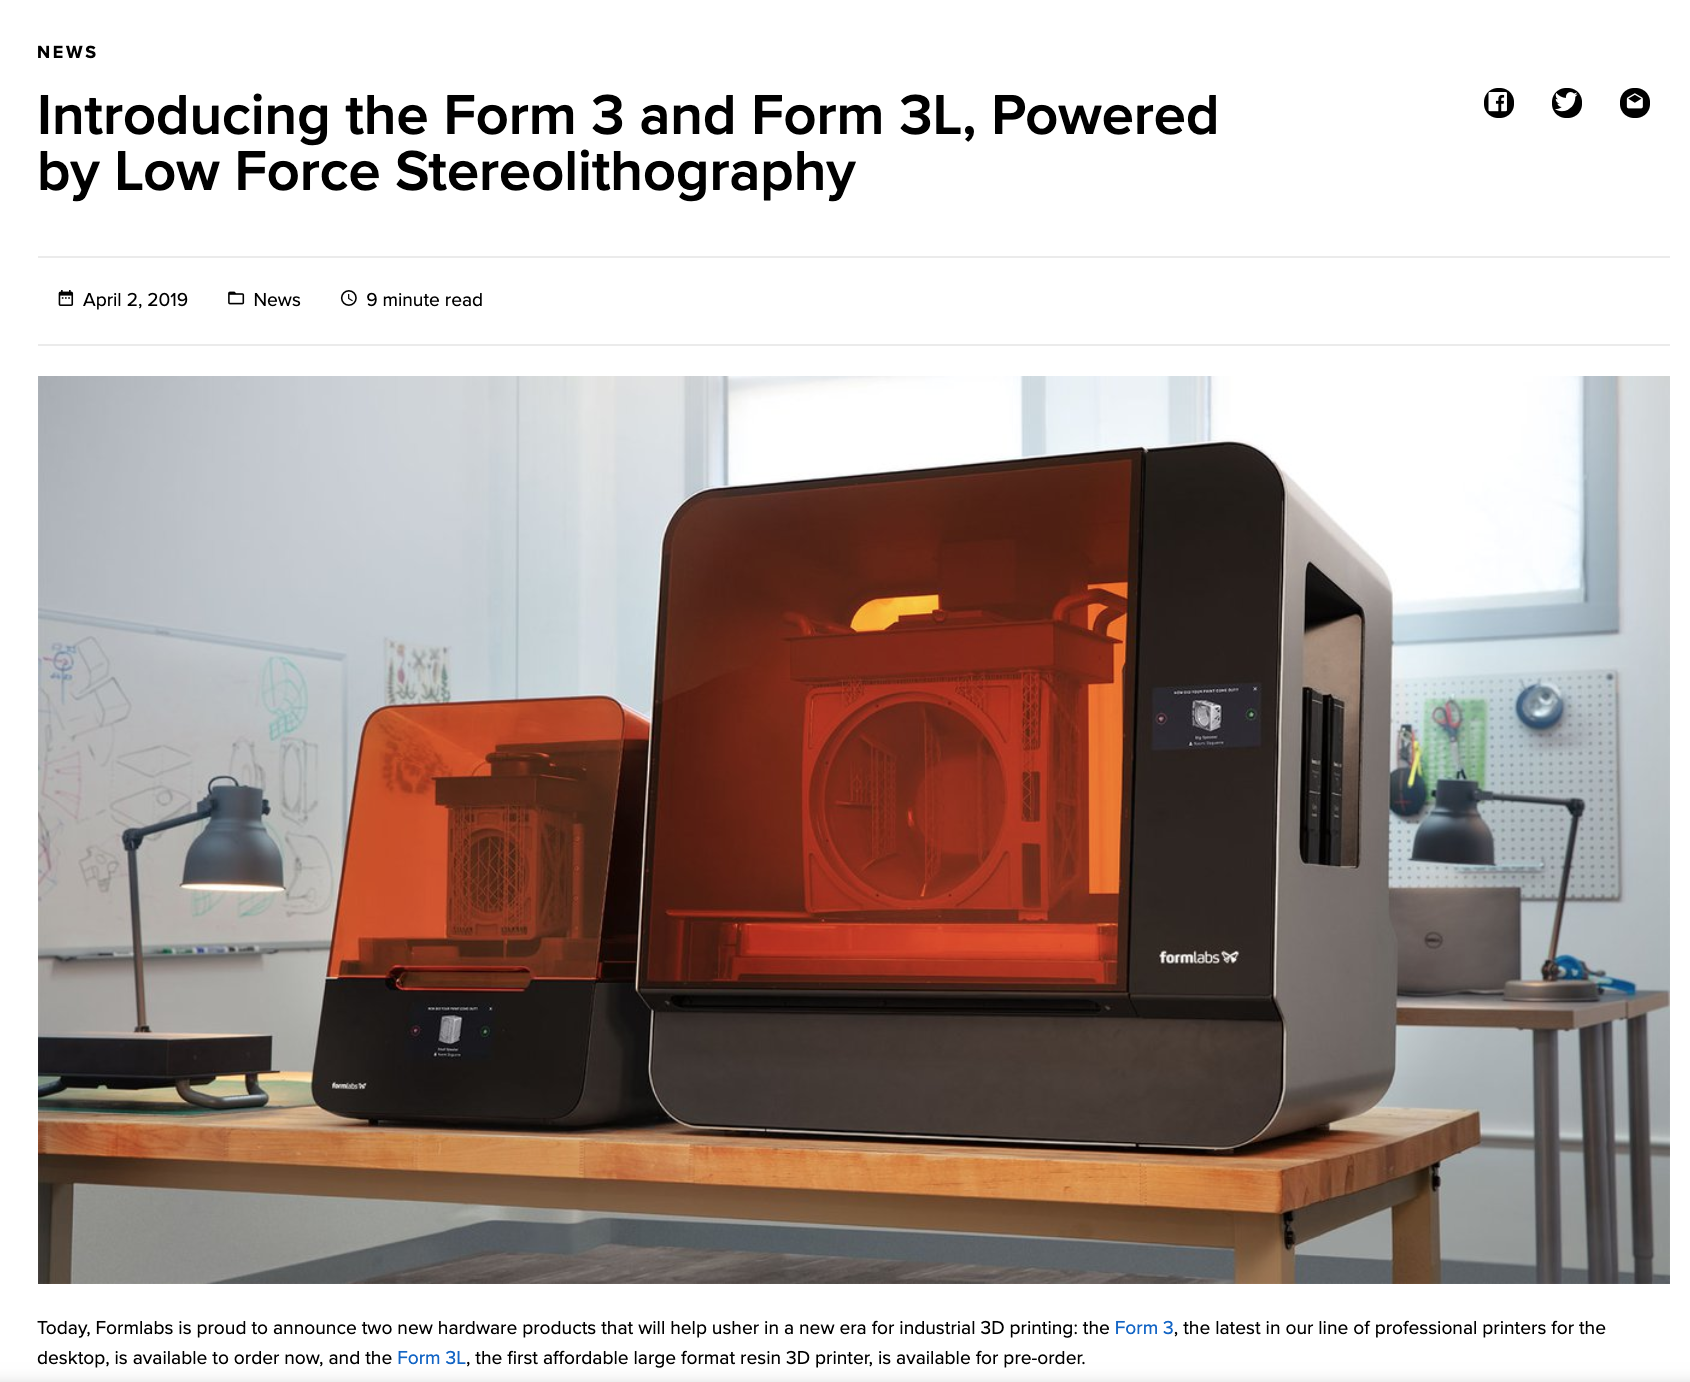 Blog: Introducing the Form 3 and Form 3L, Powered by Low Force Stereolithography